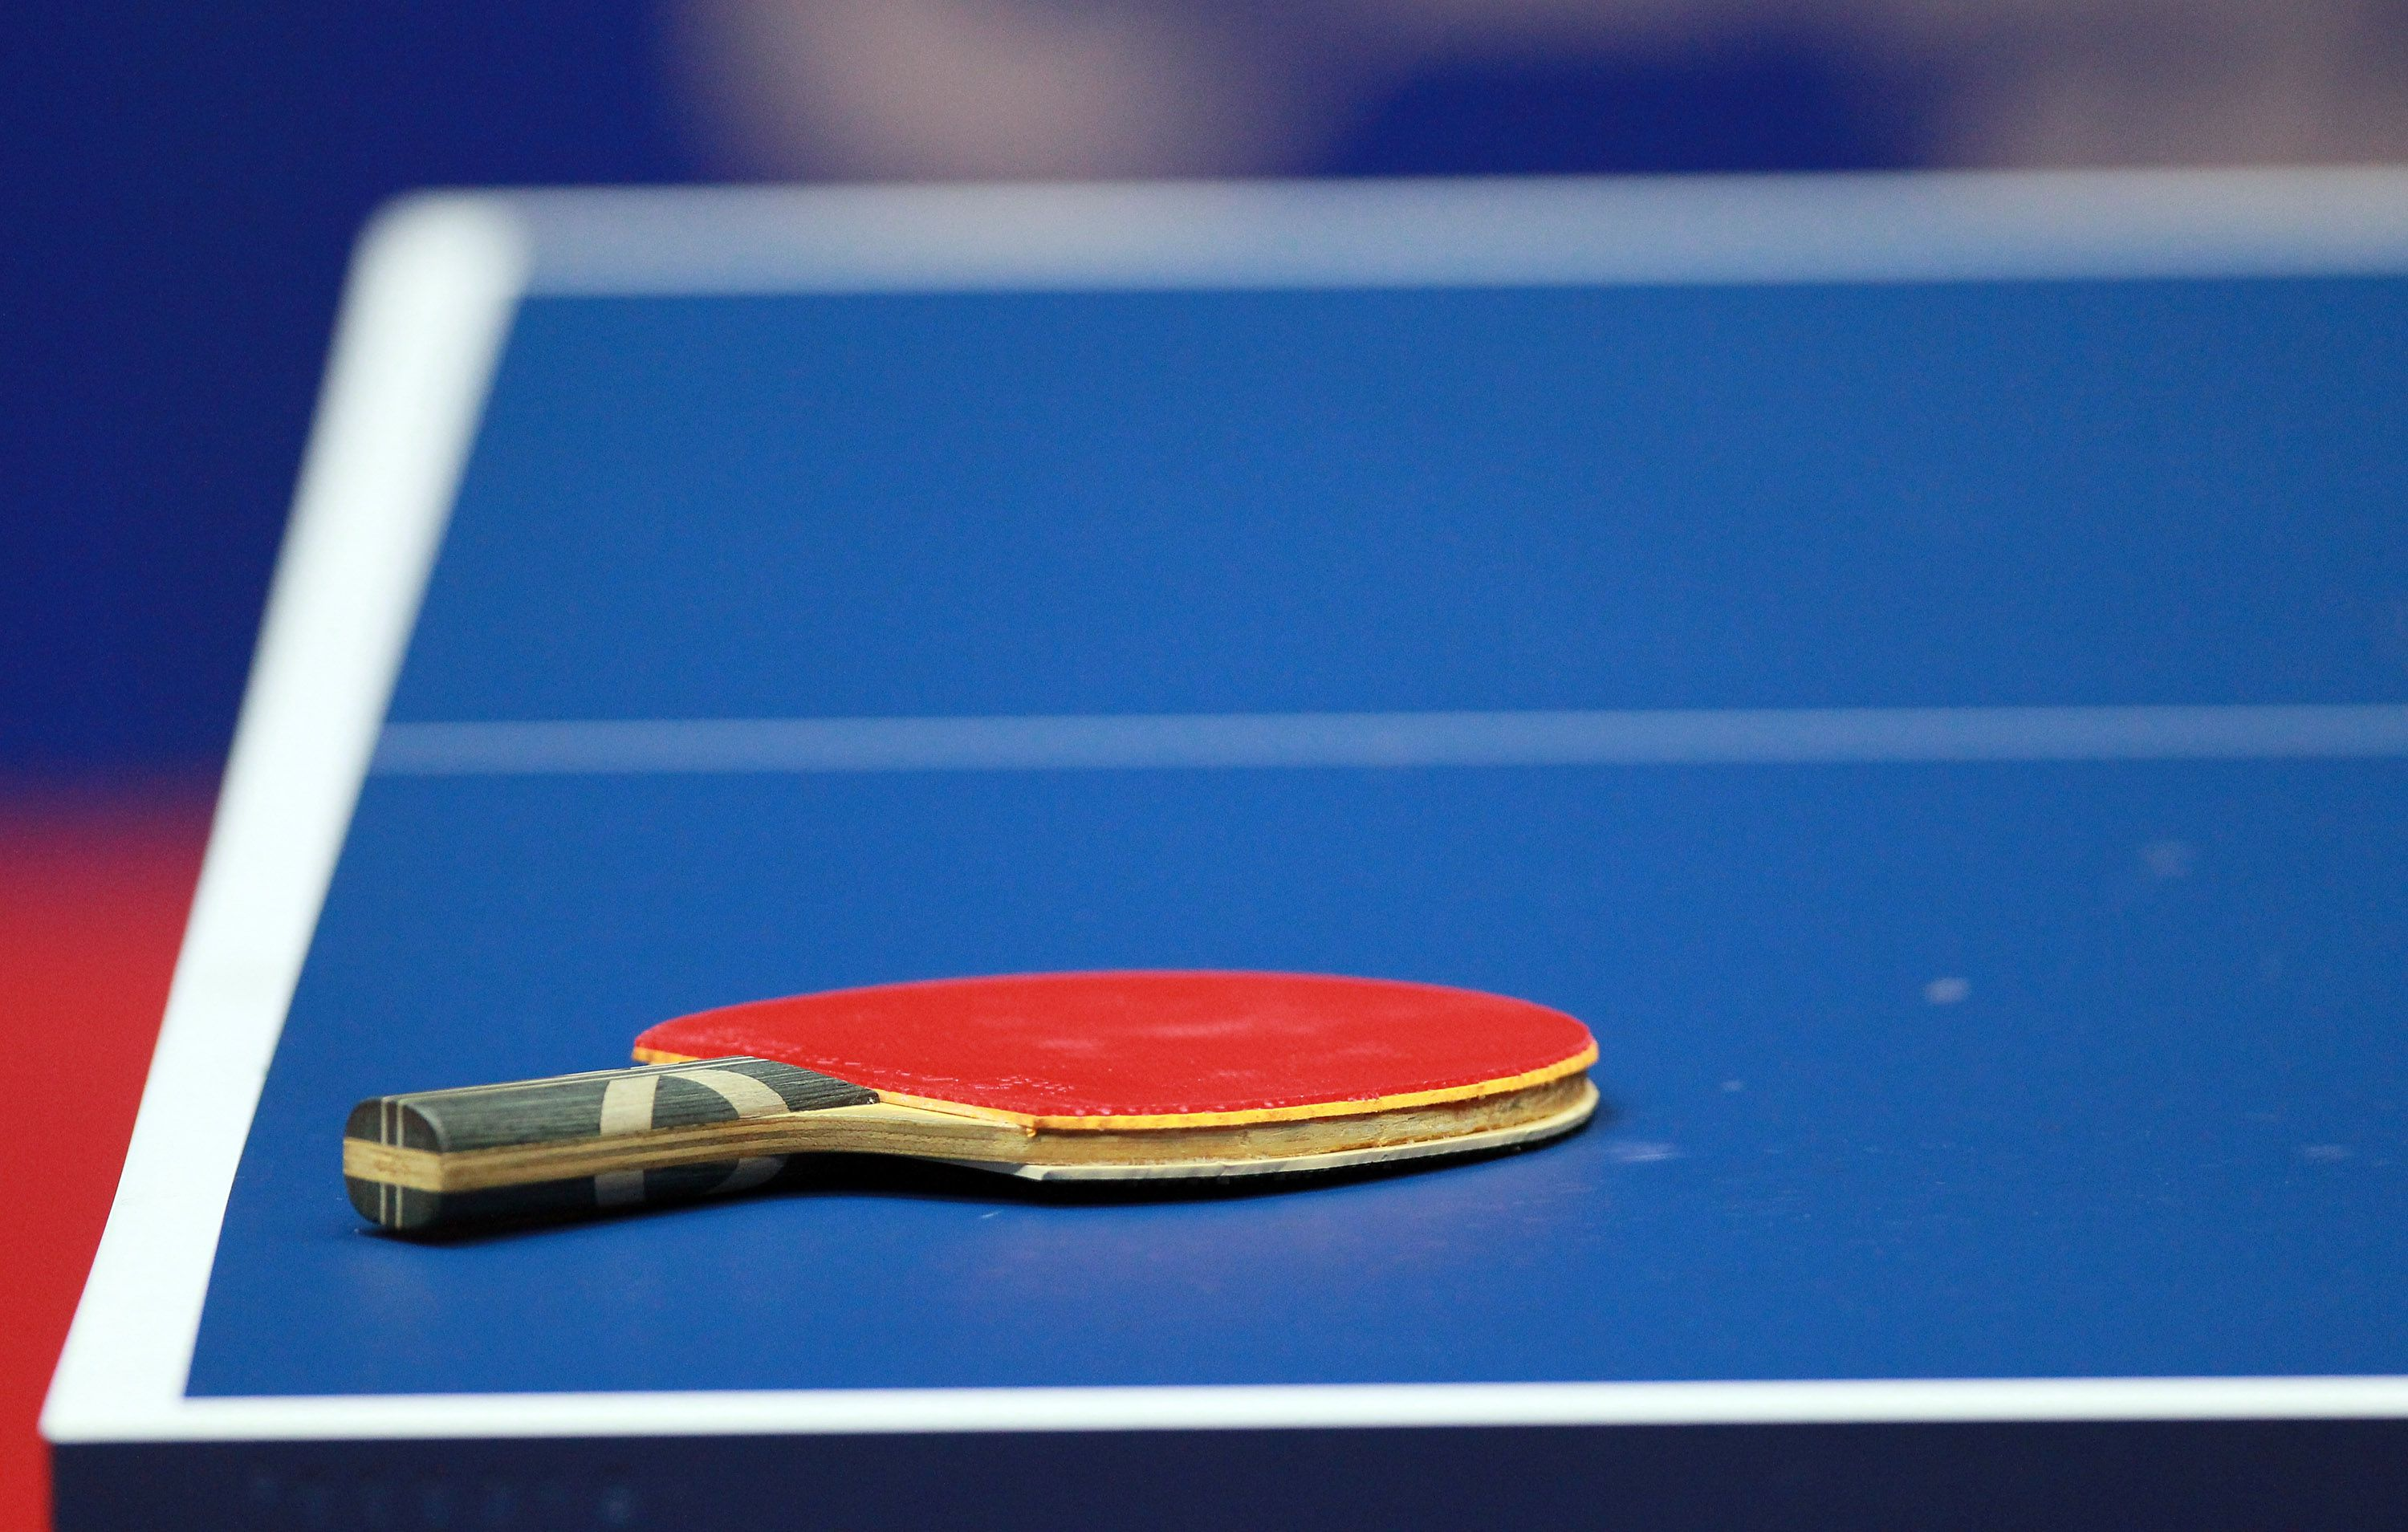 Differences Between Red and Black Table Tennis Rubbers